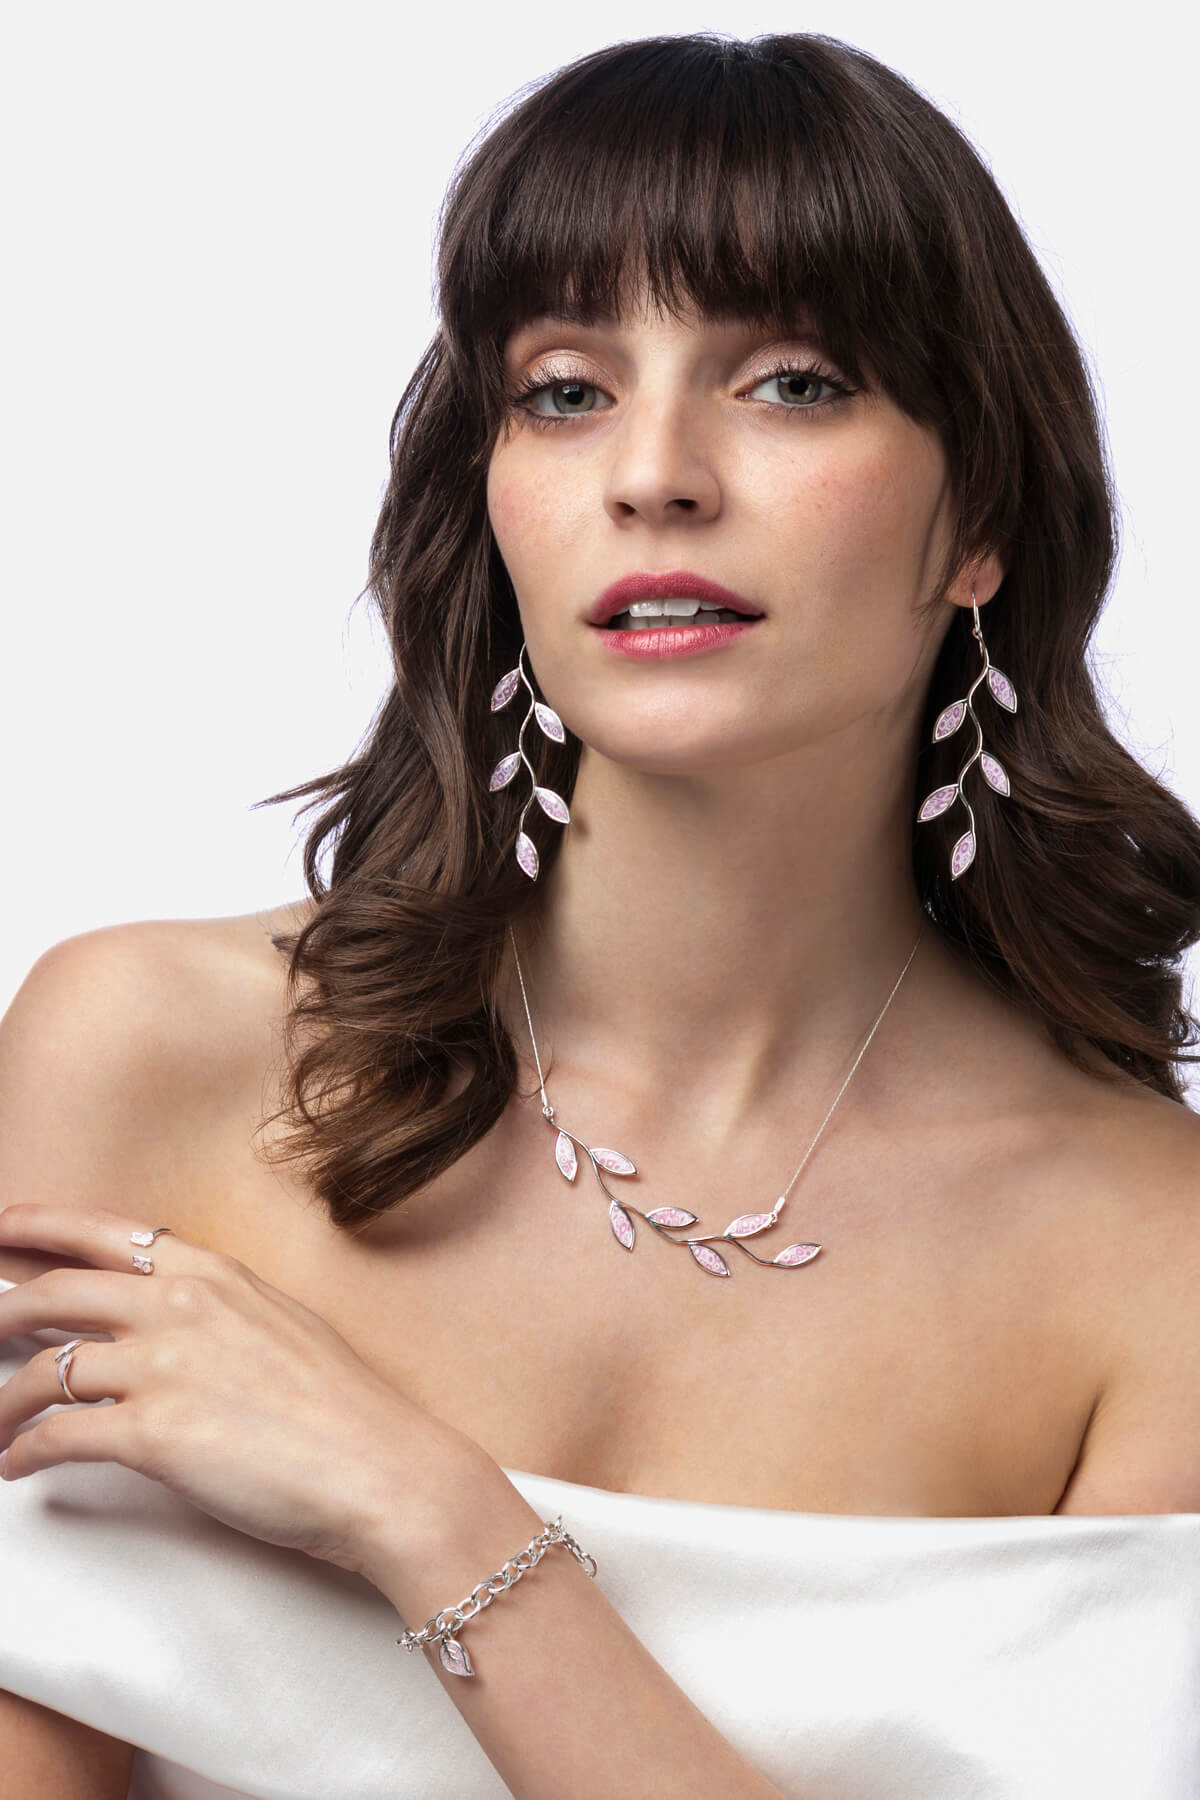 Handmade Silver Olive Leaf Long Earrings and Necklace – Rose Quartz Pink Pattern